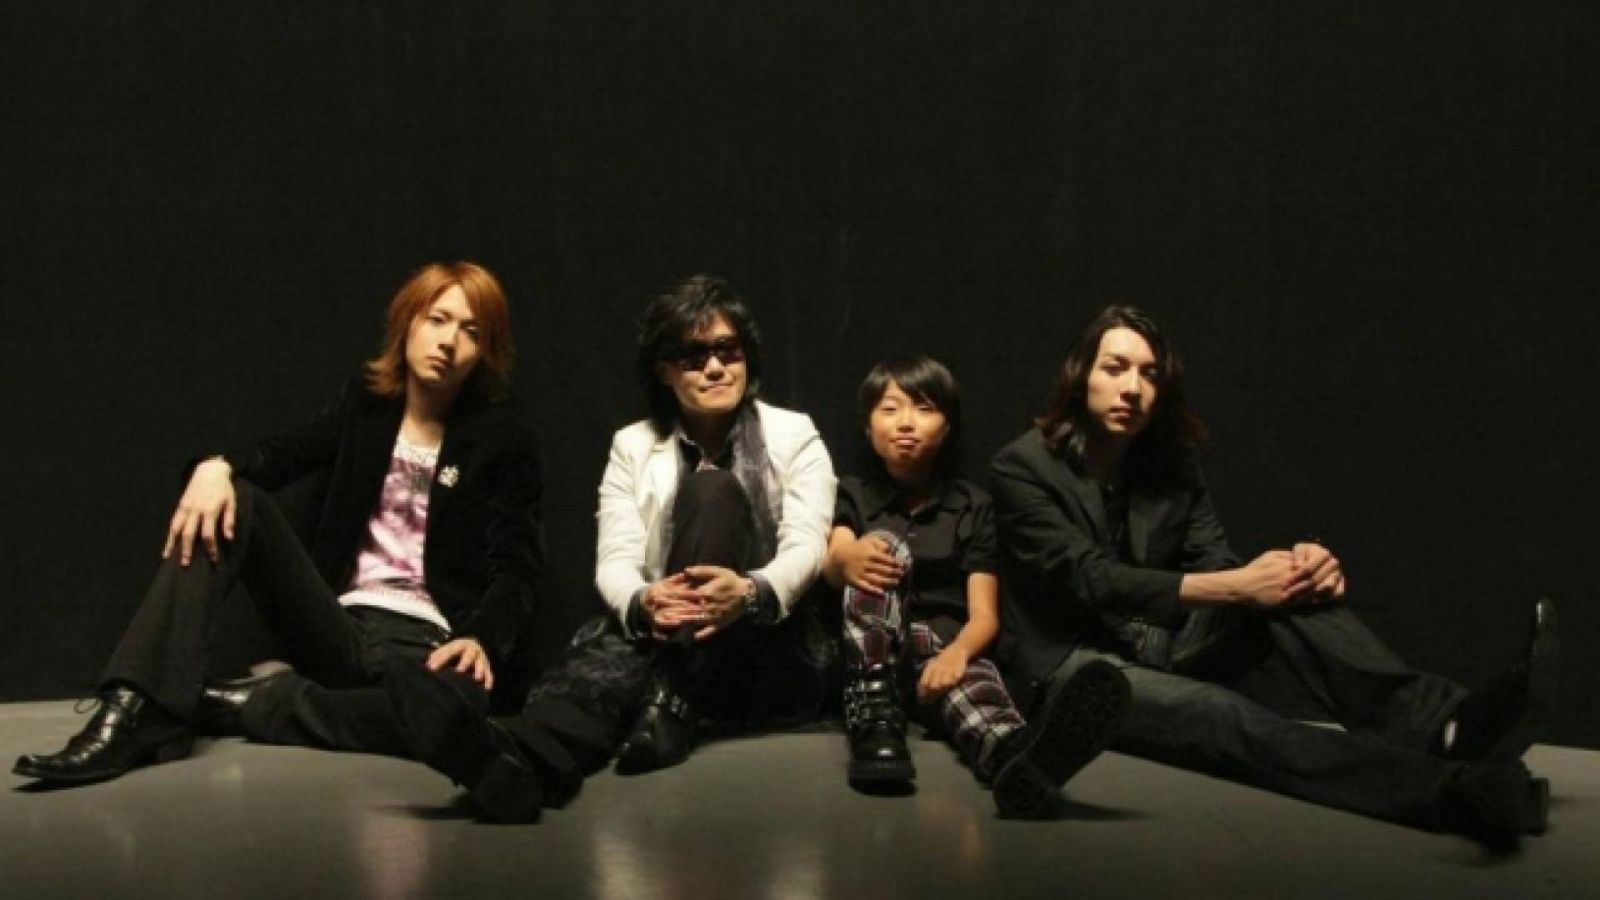 TOSHI with T-EARTH © Healing World Co., Ltd.